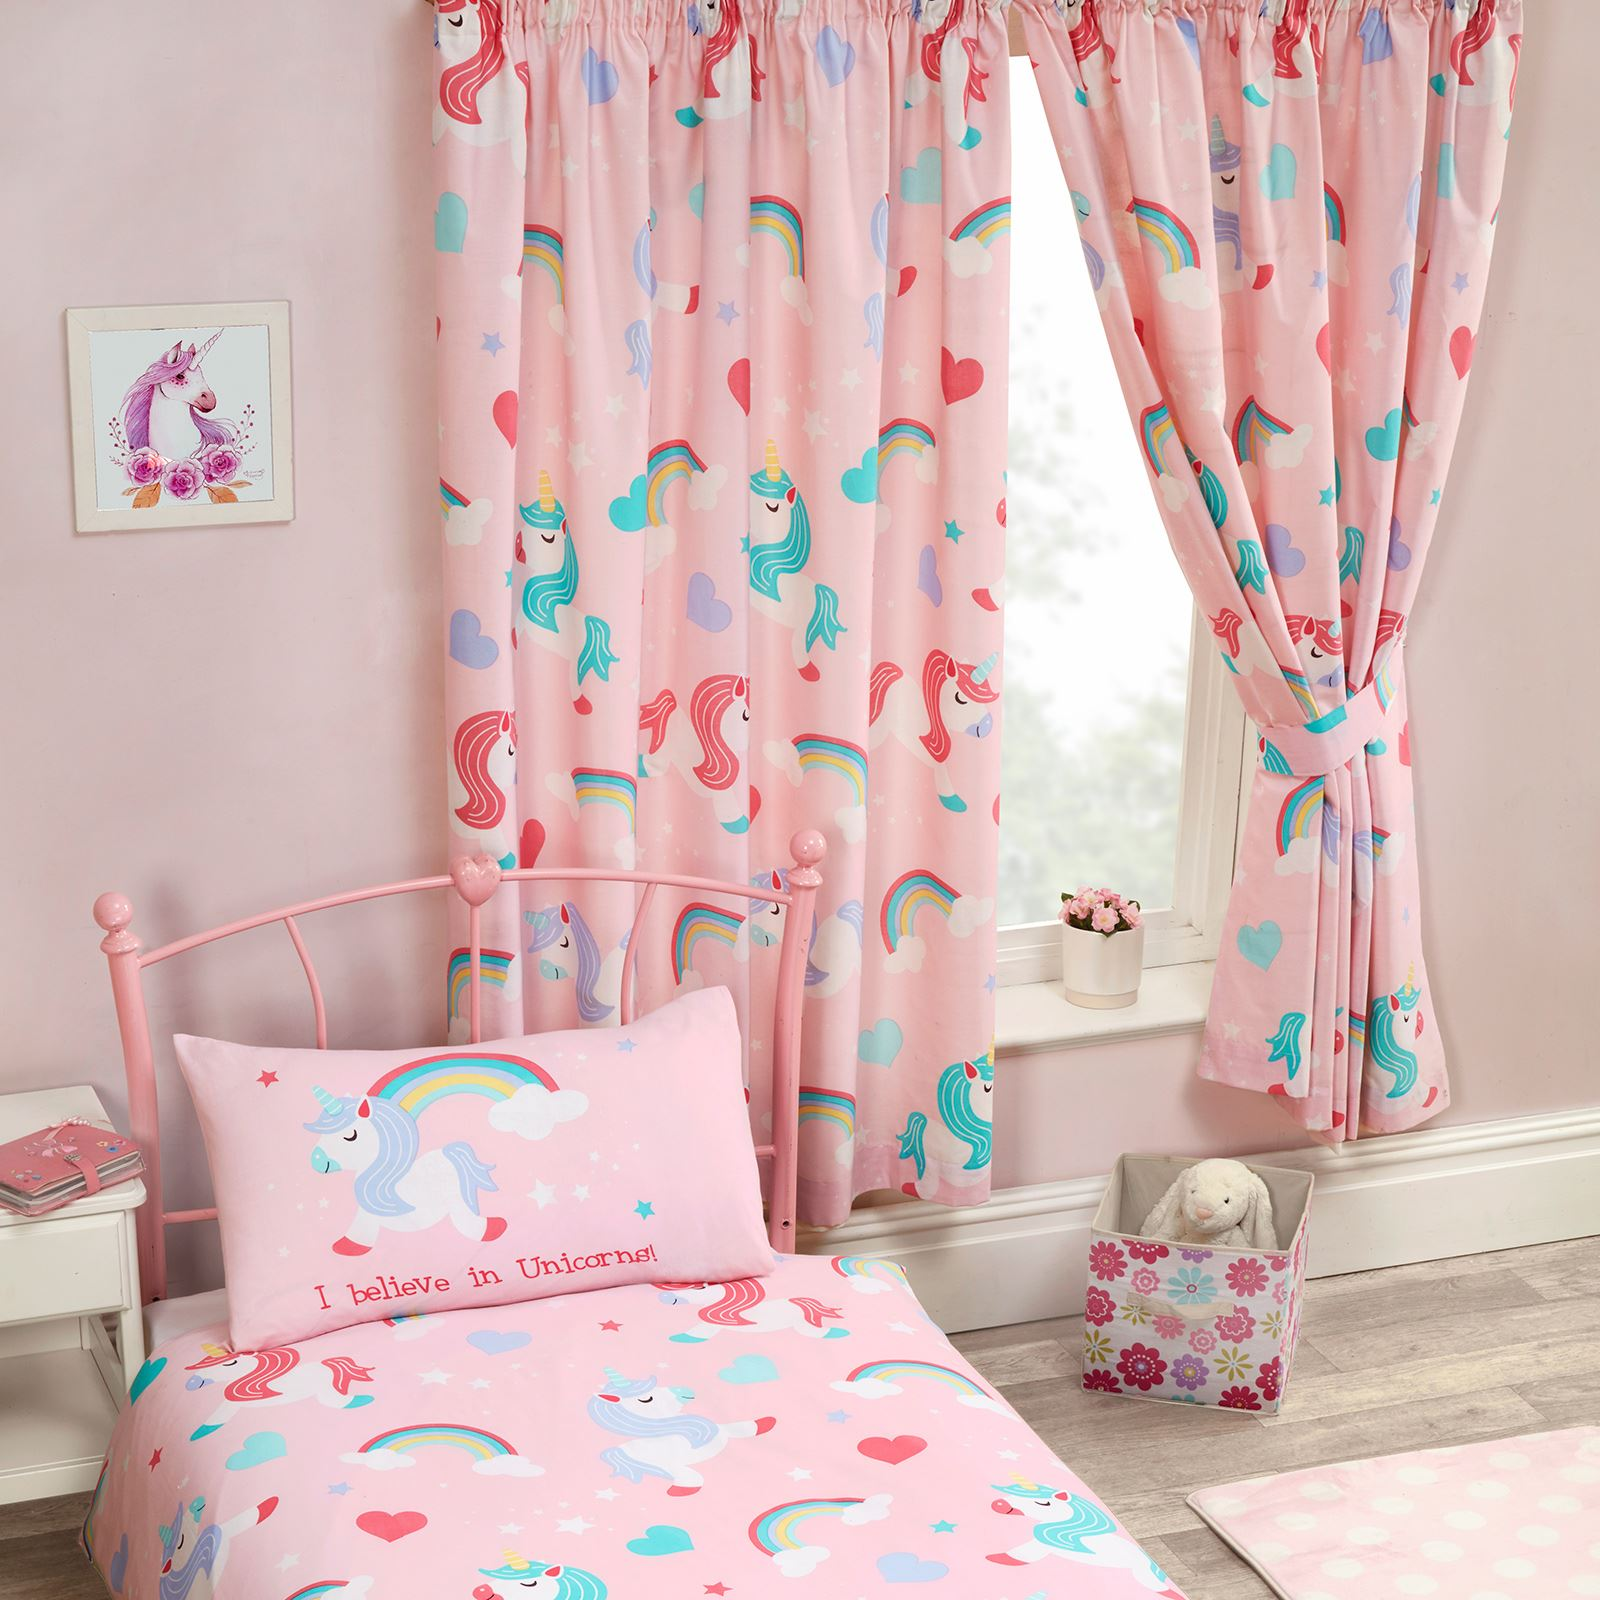 girls bedroom curtains 66 x 72 unicorns ponies flamingos stars more ebay. Black Bedroom Furniture Sets. Home Design Ideas